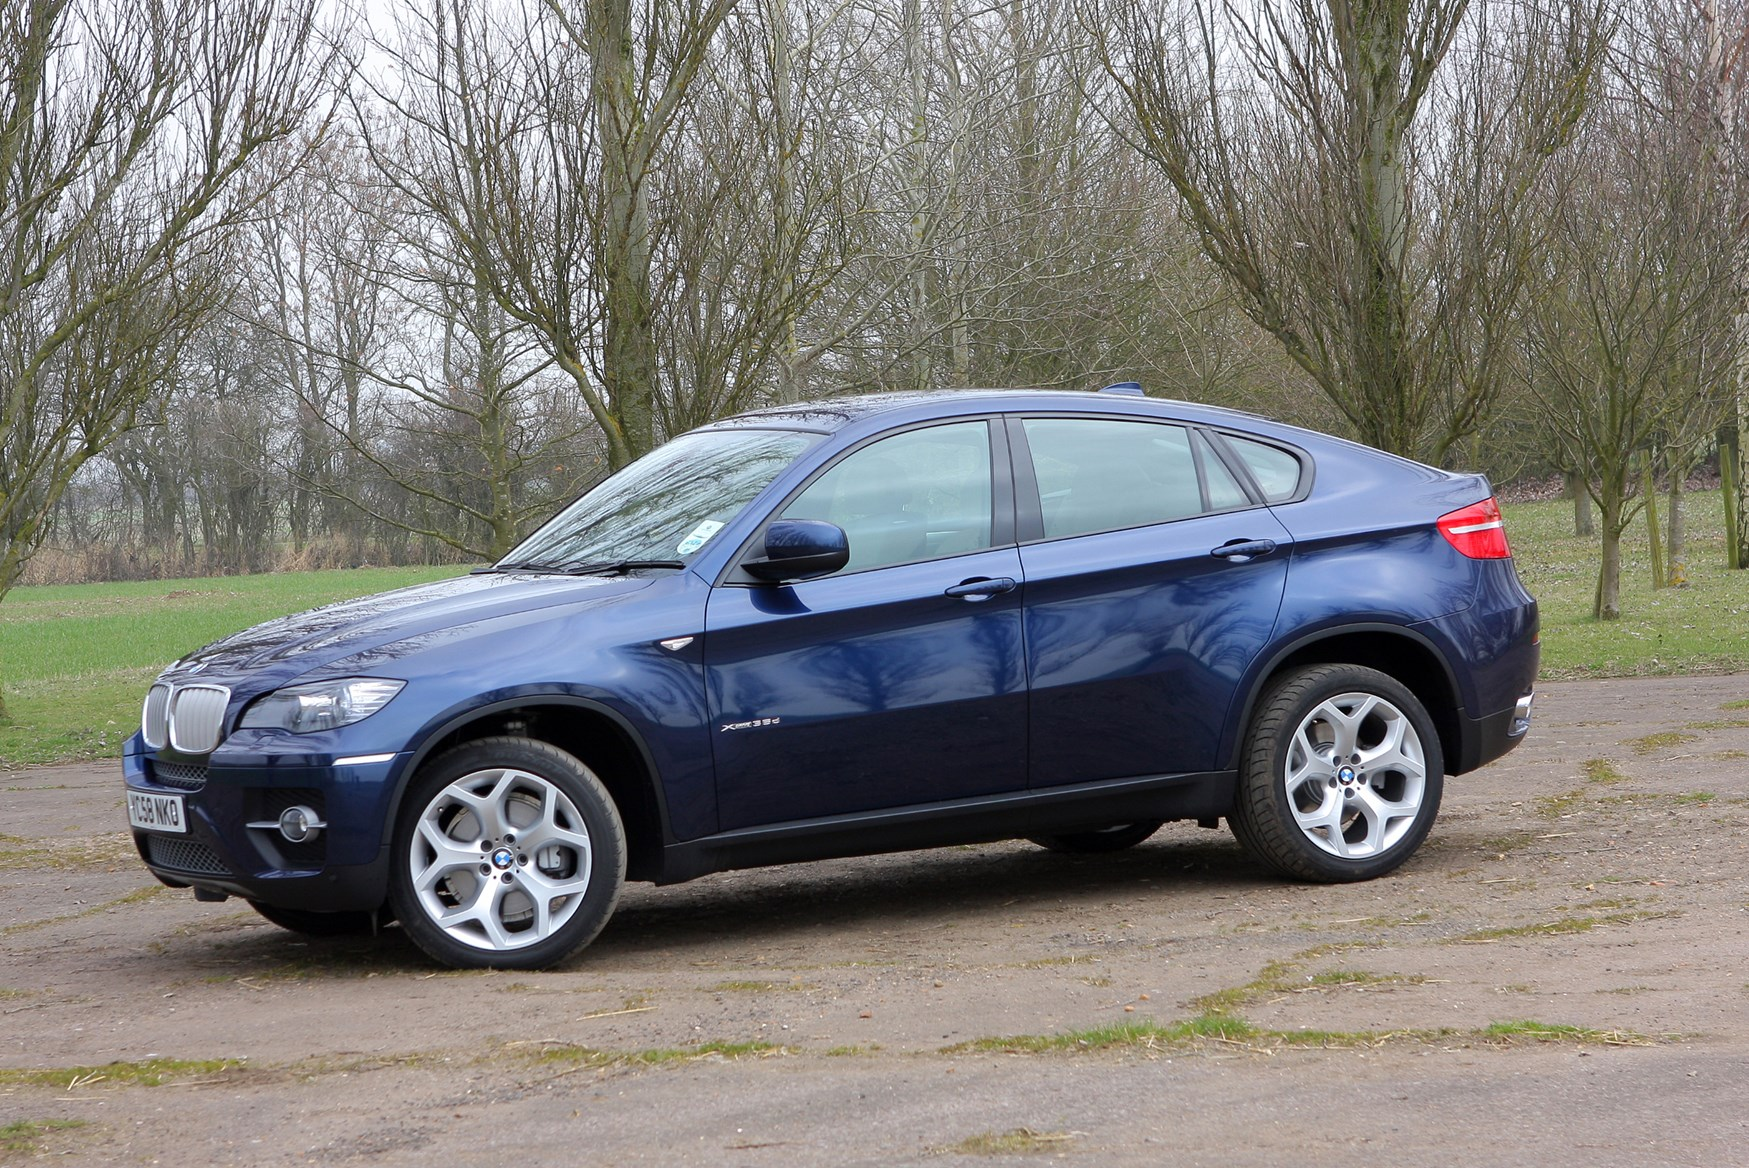 bmw x6 for sale used bmw x6 cars parkers autos post. Black Bedroom Furniture Sets. Home Design Ideas